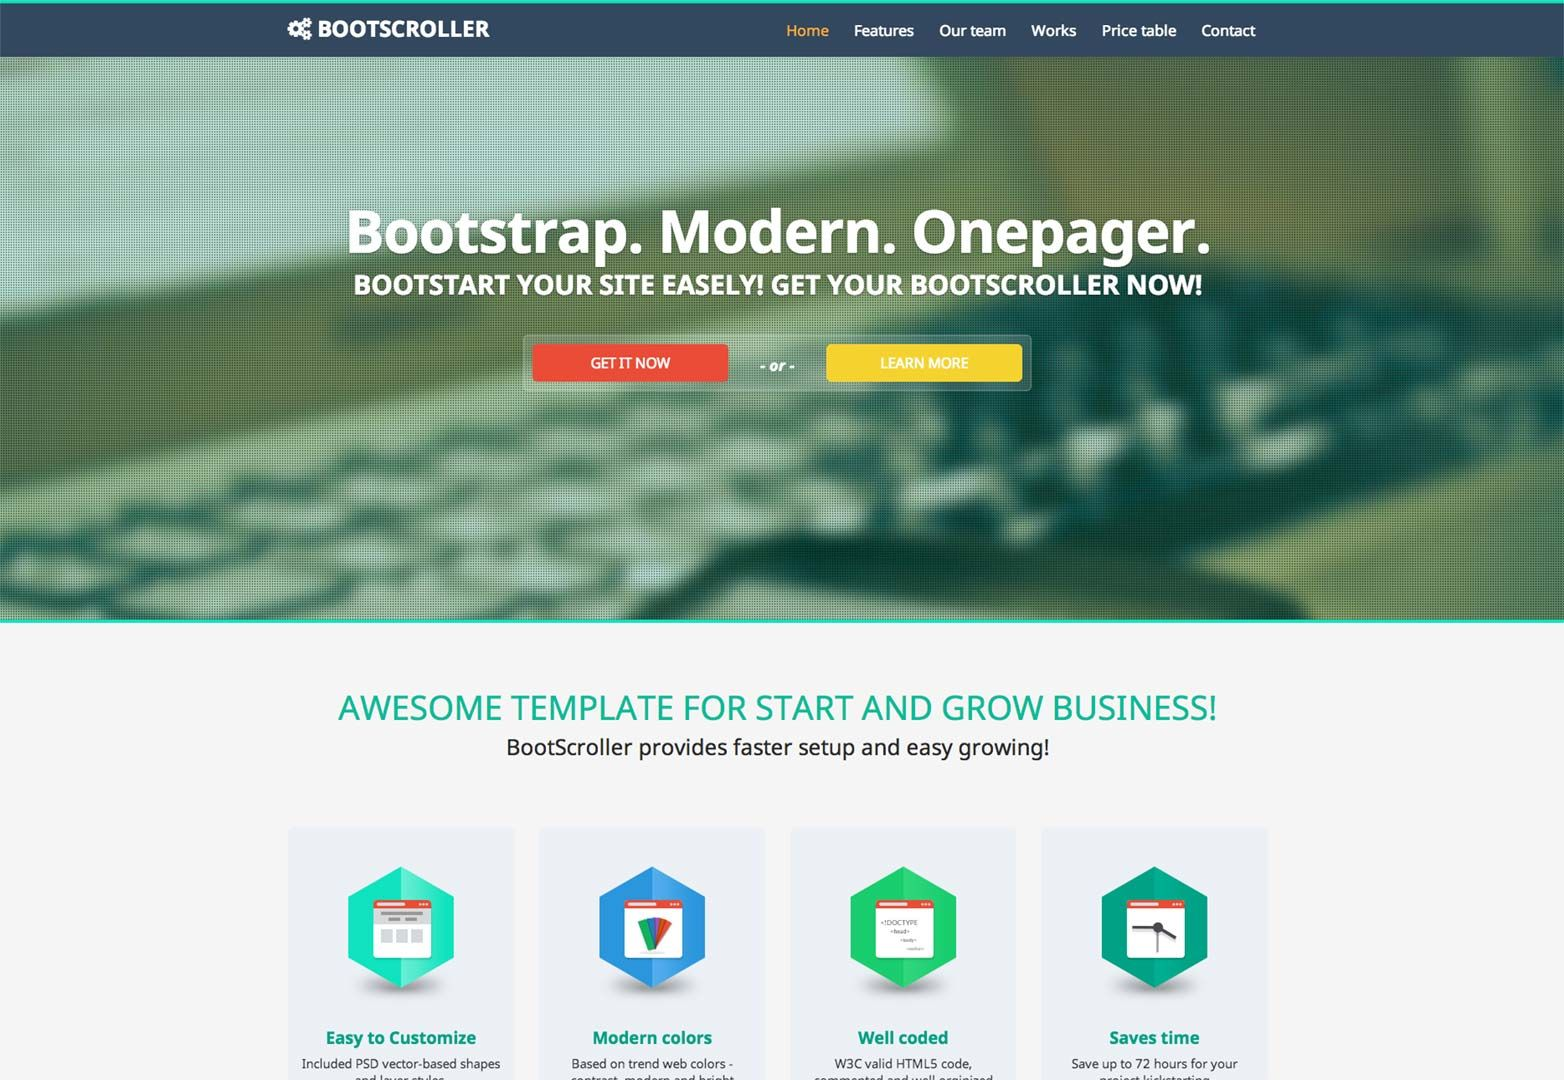 Deal of the week: 10 Twitter Bootstrap Templates | Webdesign ...